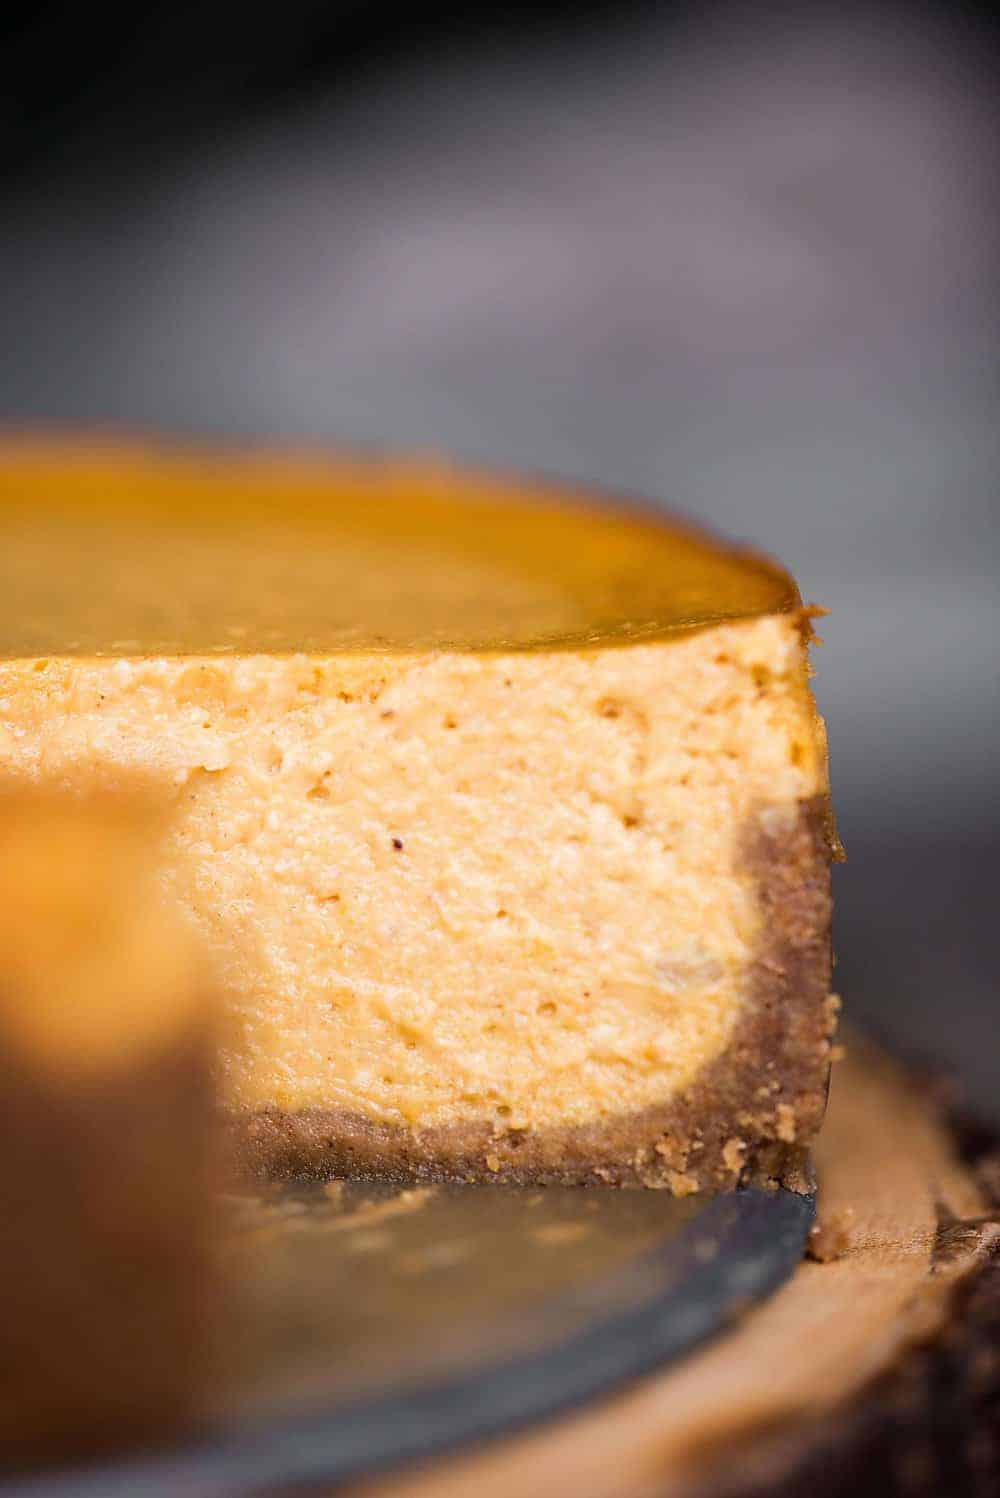 Easy Pumpkin Cheesecake is the perfect fall dessert. Made from scratch using quality ingredients, it is the best pumpkin cheesecake recipe you'll find!